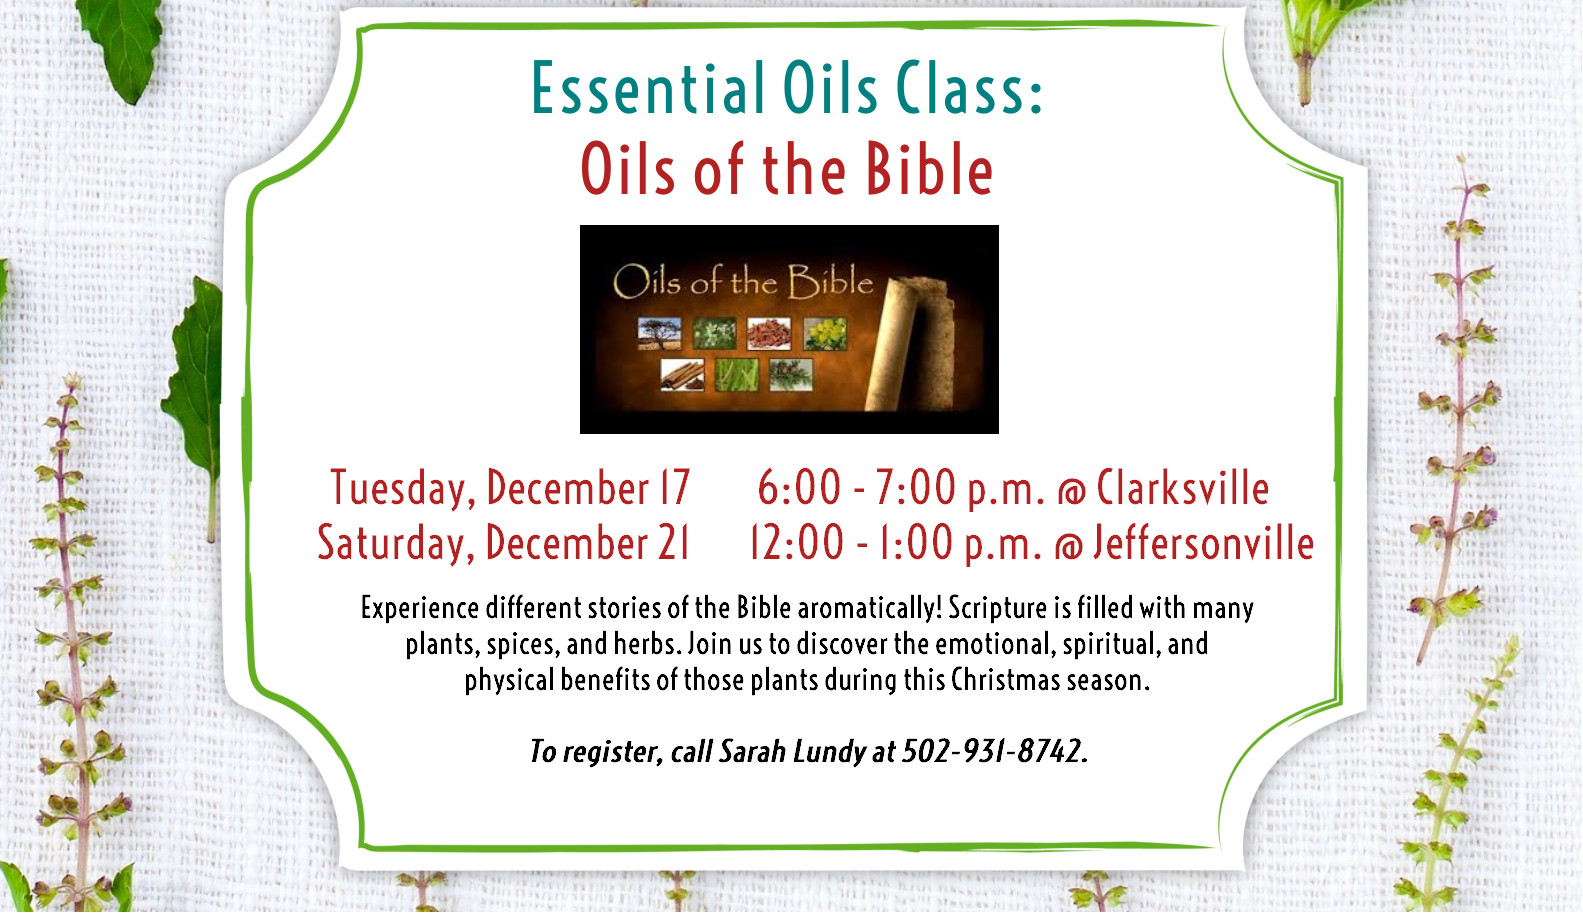 Flyer for Essential Oils classes